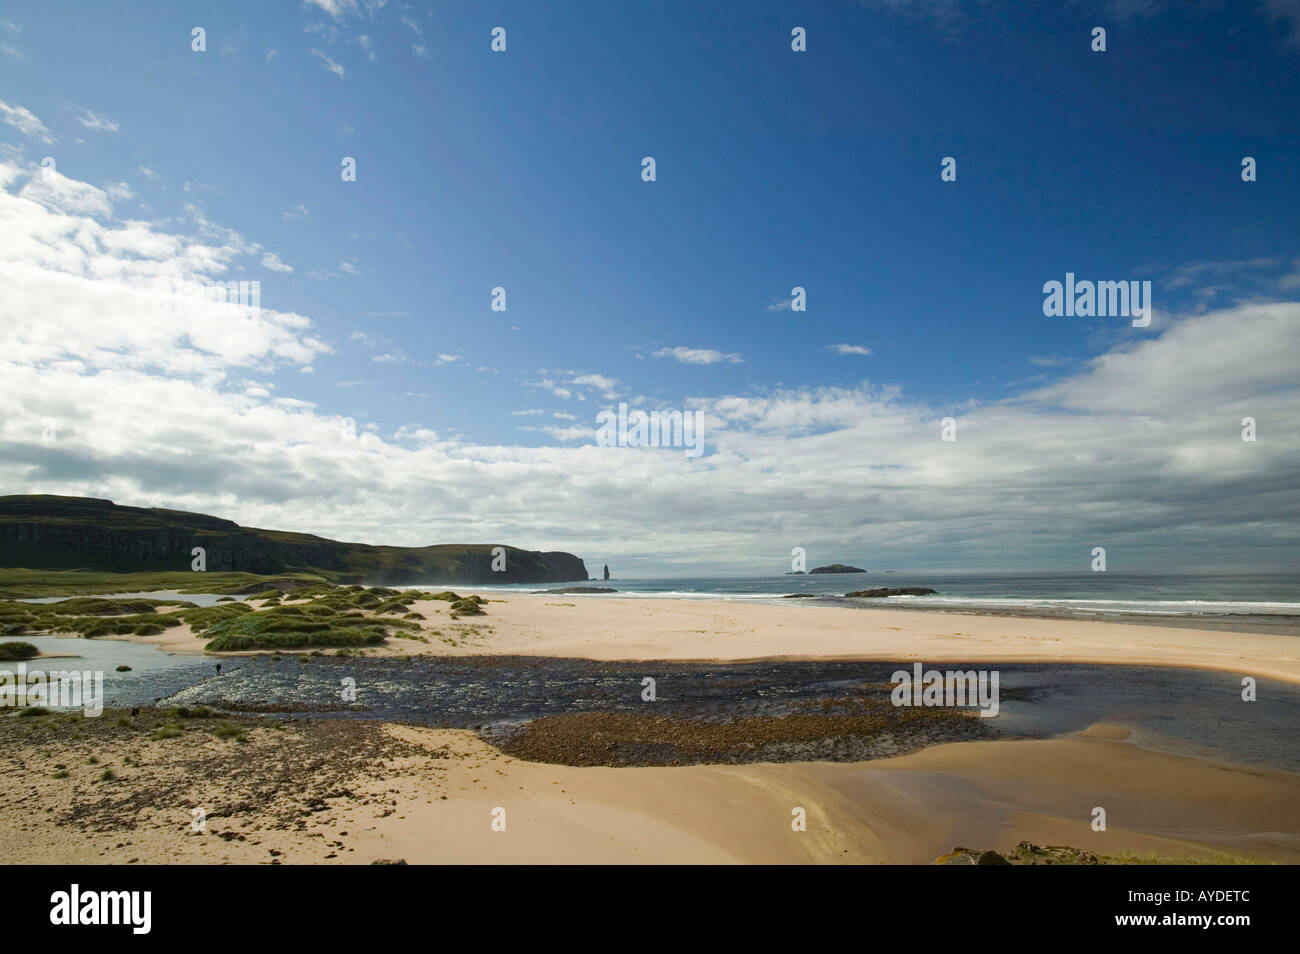 The outflow of Sandwood loch with peat stained water and Sandwood Bay, Sutherland, Scotland, UK - Stock Image